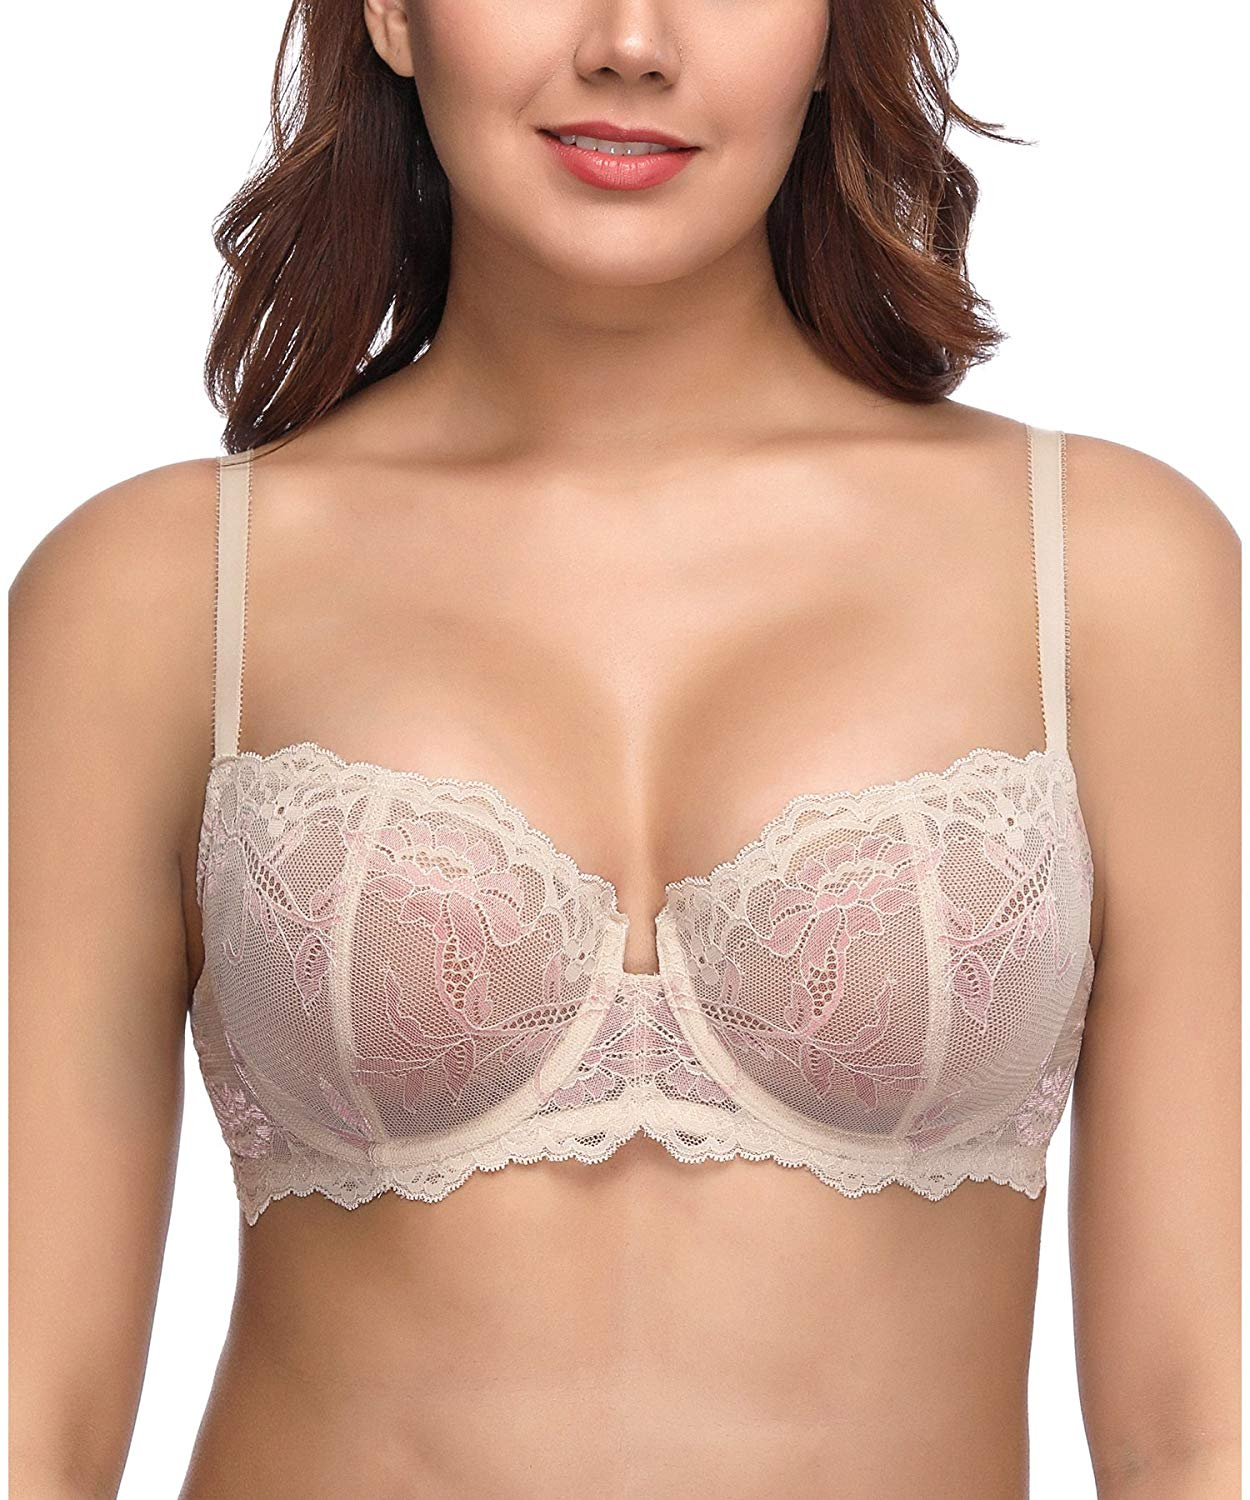 e814580d1 Get Quotations · Deyllo Women Sexy Lace Bra Underwire Unlined Bra Floral  Sheer Non Padded See Through